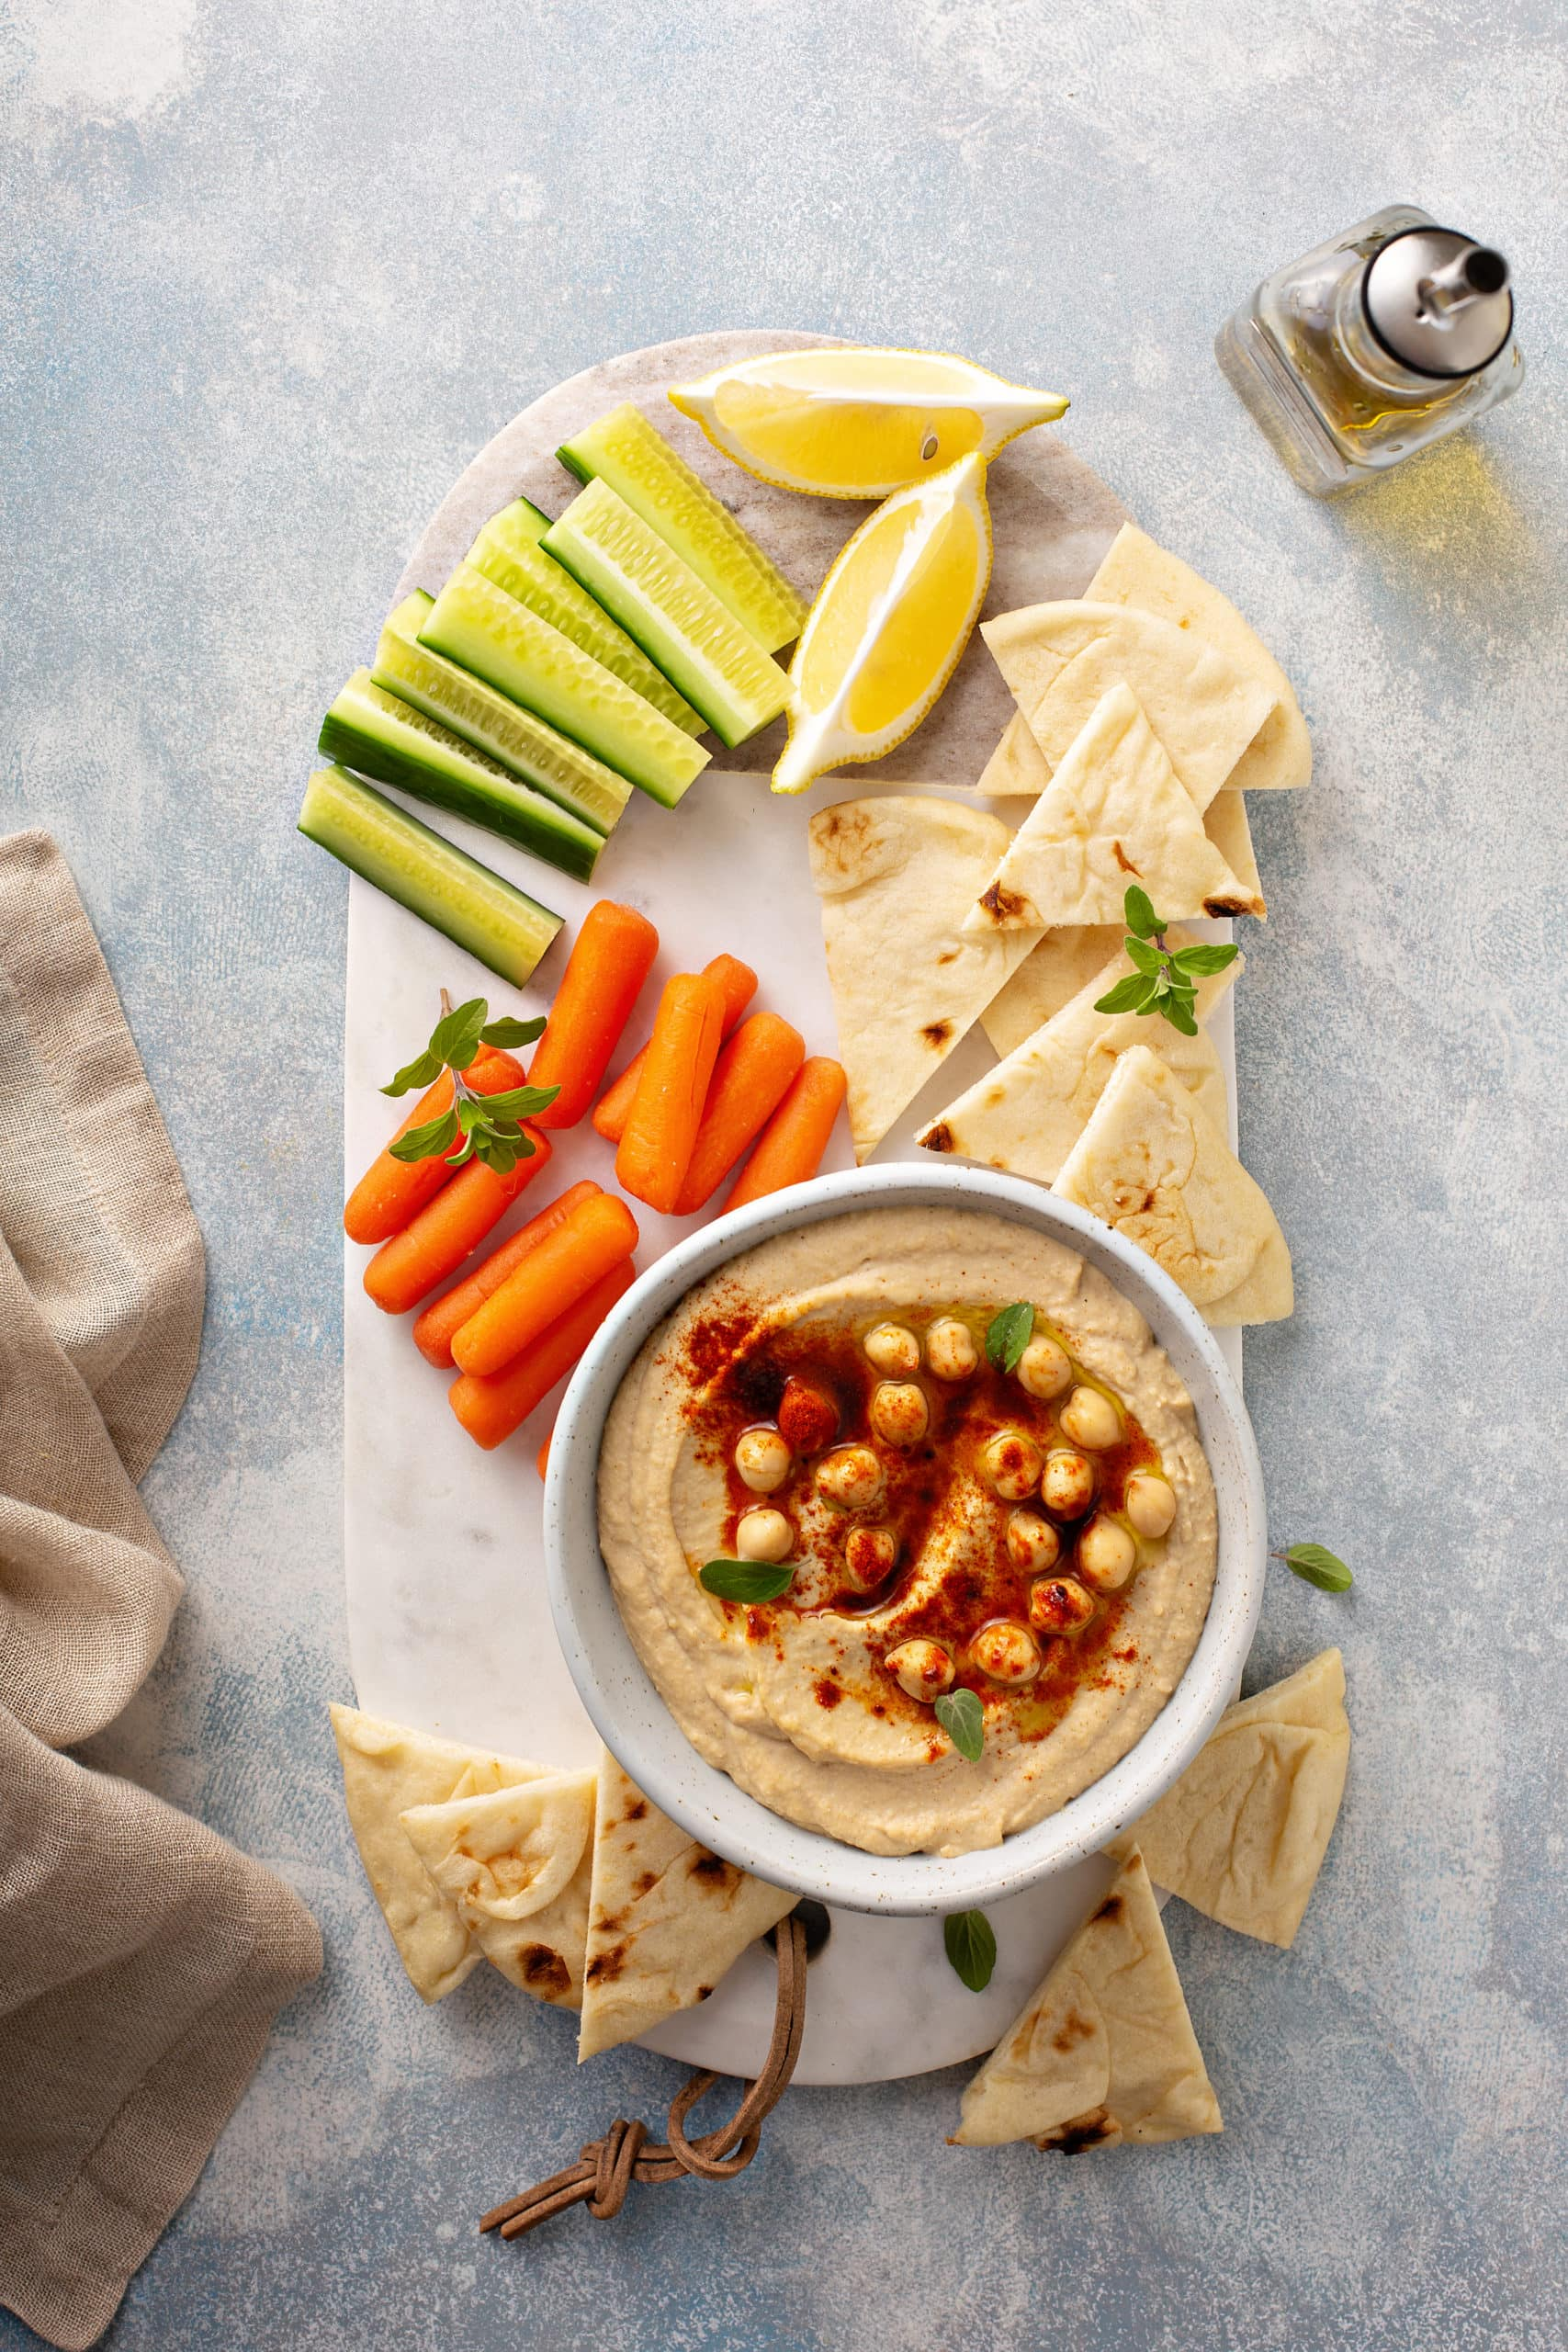 A tray with baby carrots, celery sticks, lemon wedges and tortilla wedges sitting next to a bowl of hummus with whole chick peas on top and sprinkled with smoked paprika